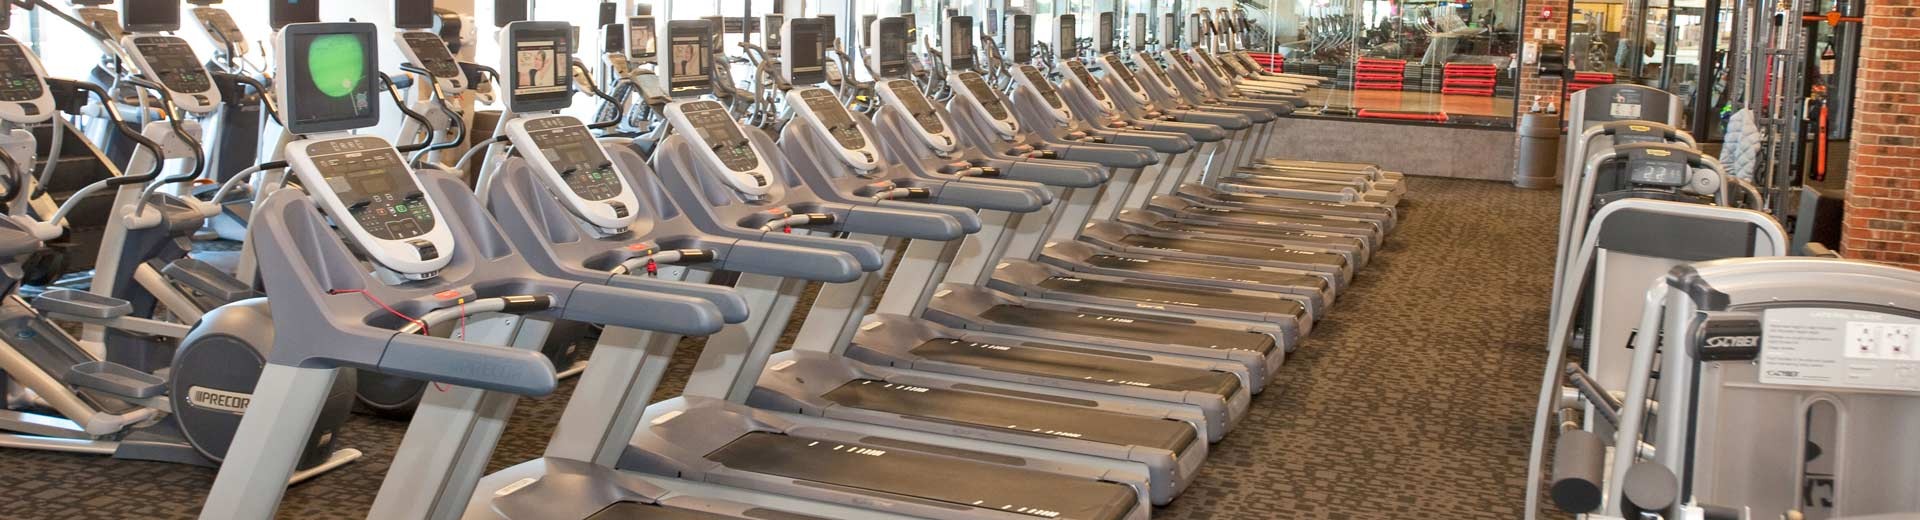 crestwood, il gym amenities | xsport fitness